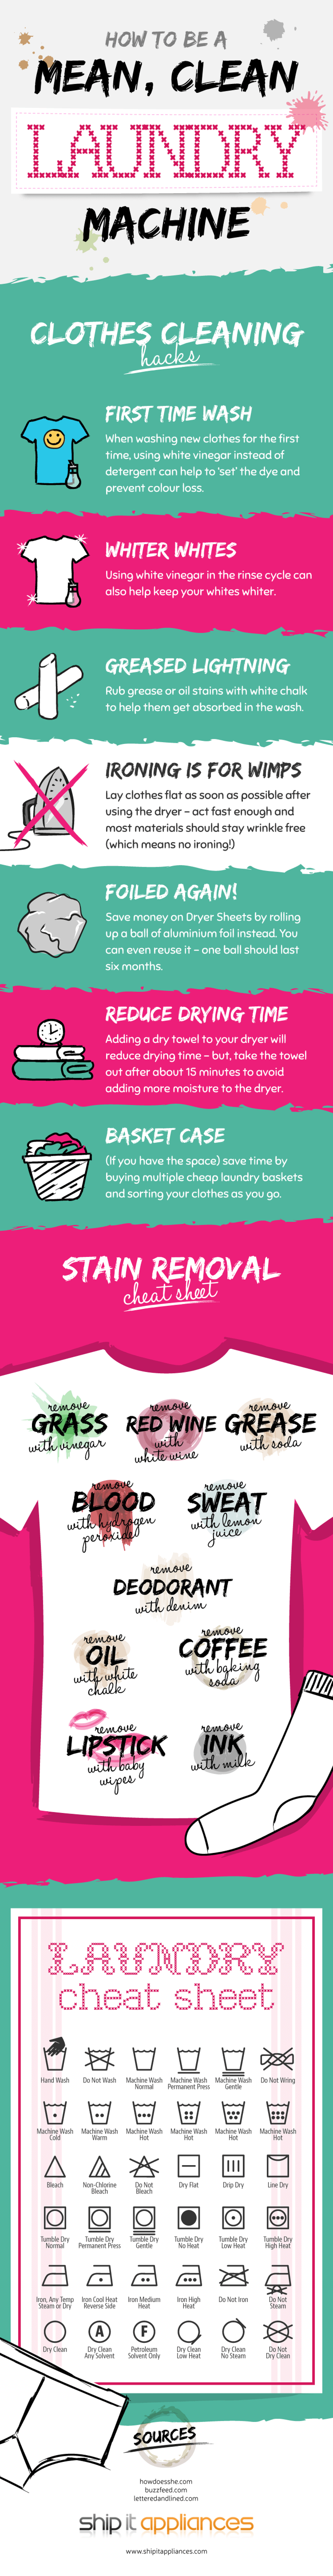 How to Be a Mean Clean Laundry Machine Infographic